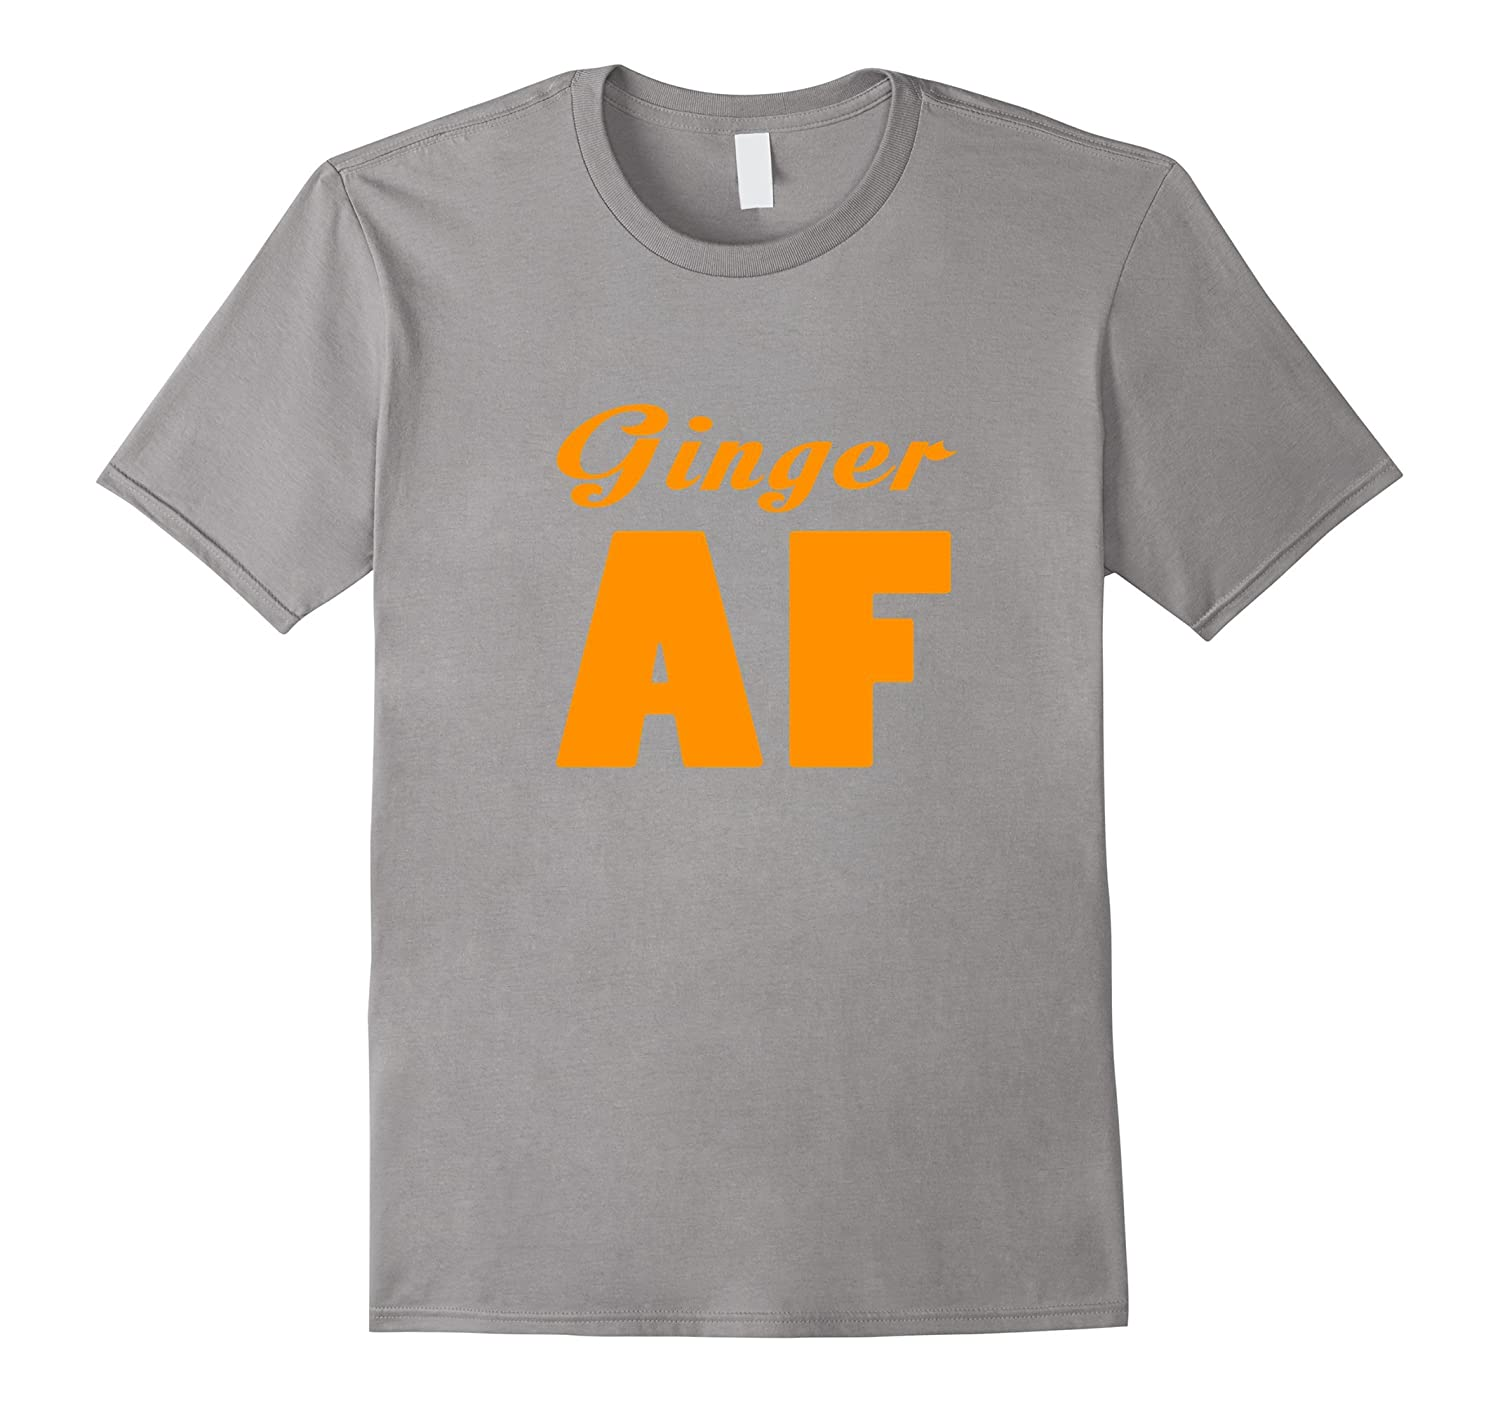 FUNNY GINGER AF T-SHIRT Ginge Hair St Patrick's Day Gift-TH